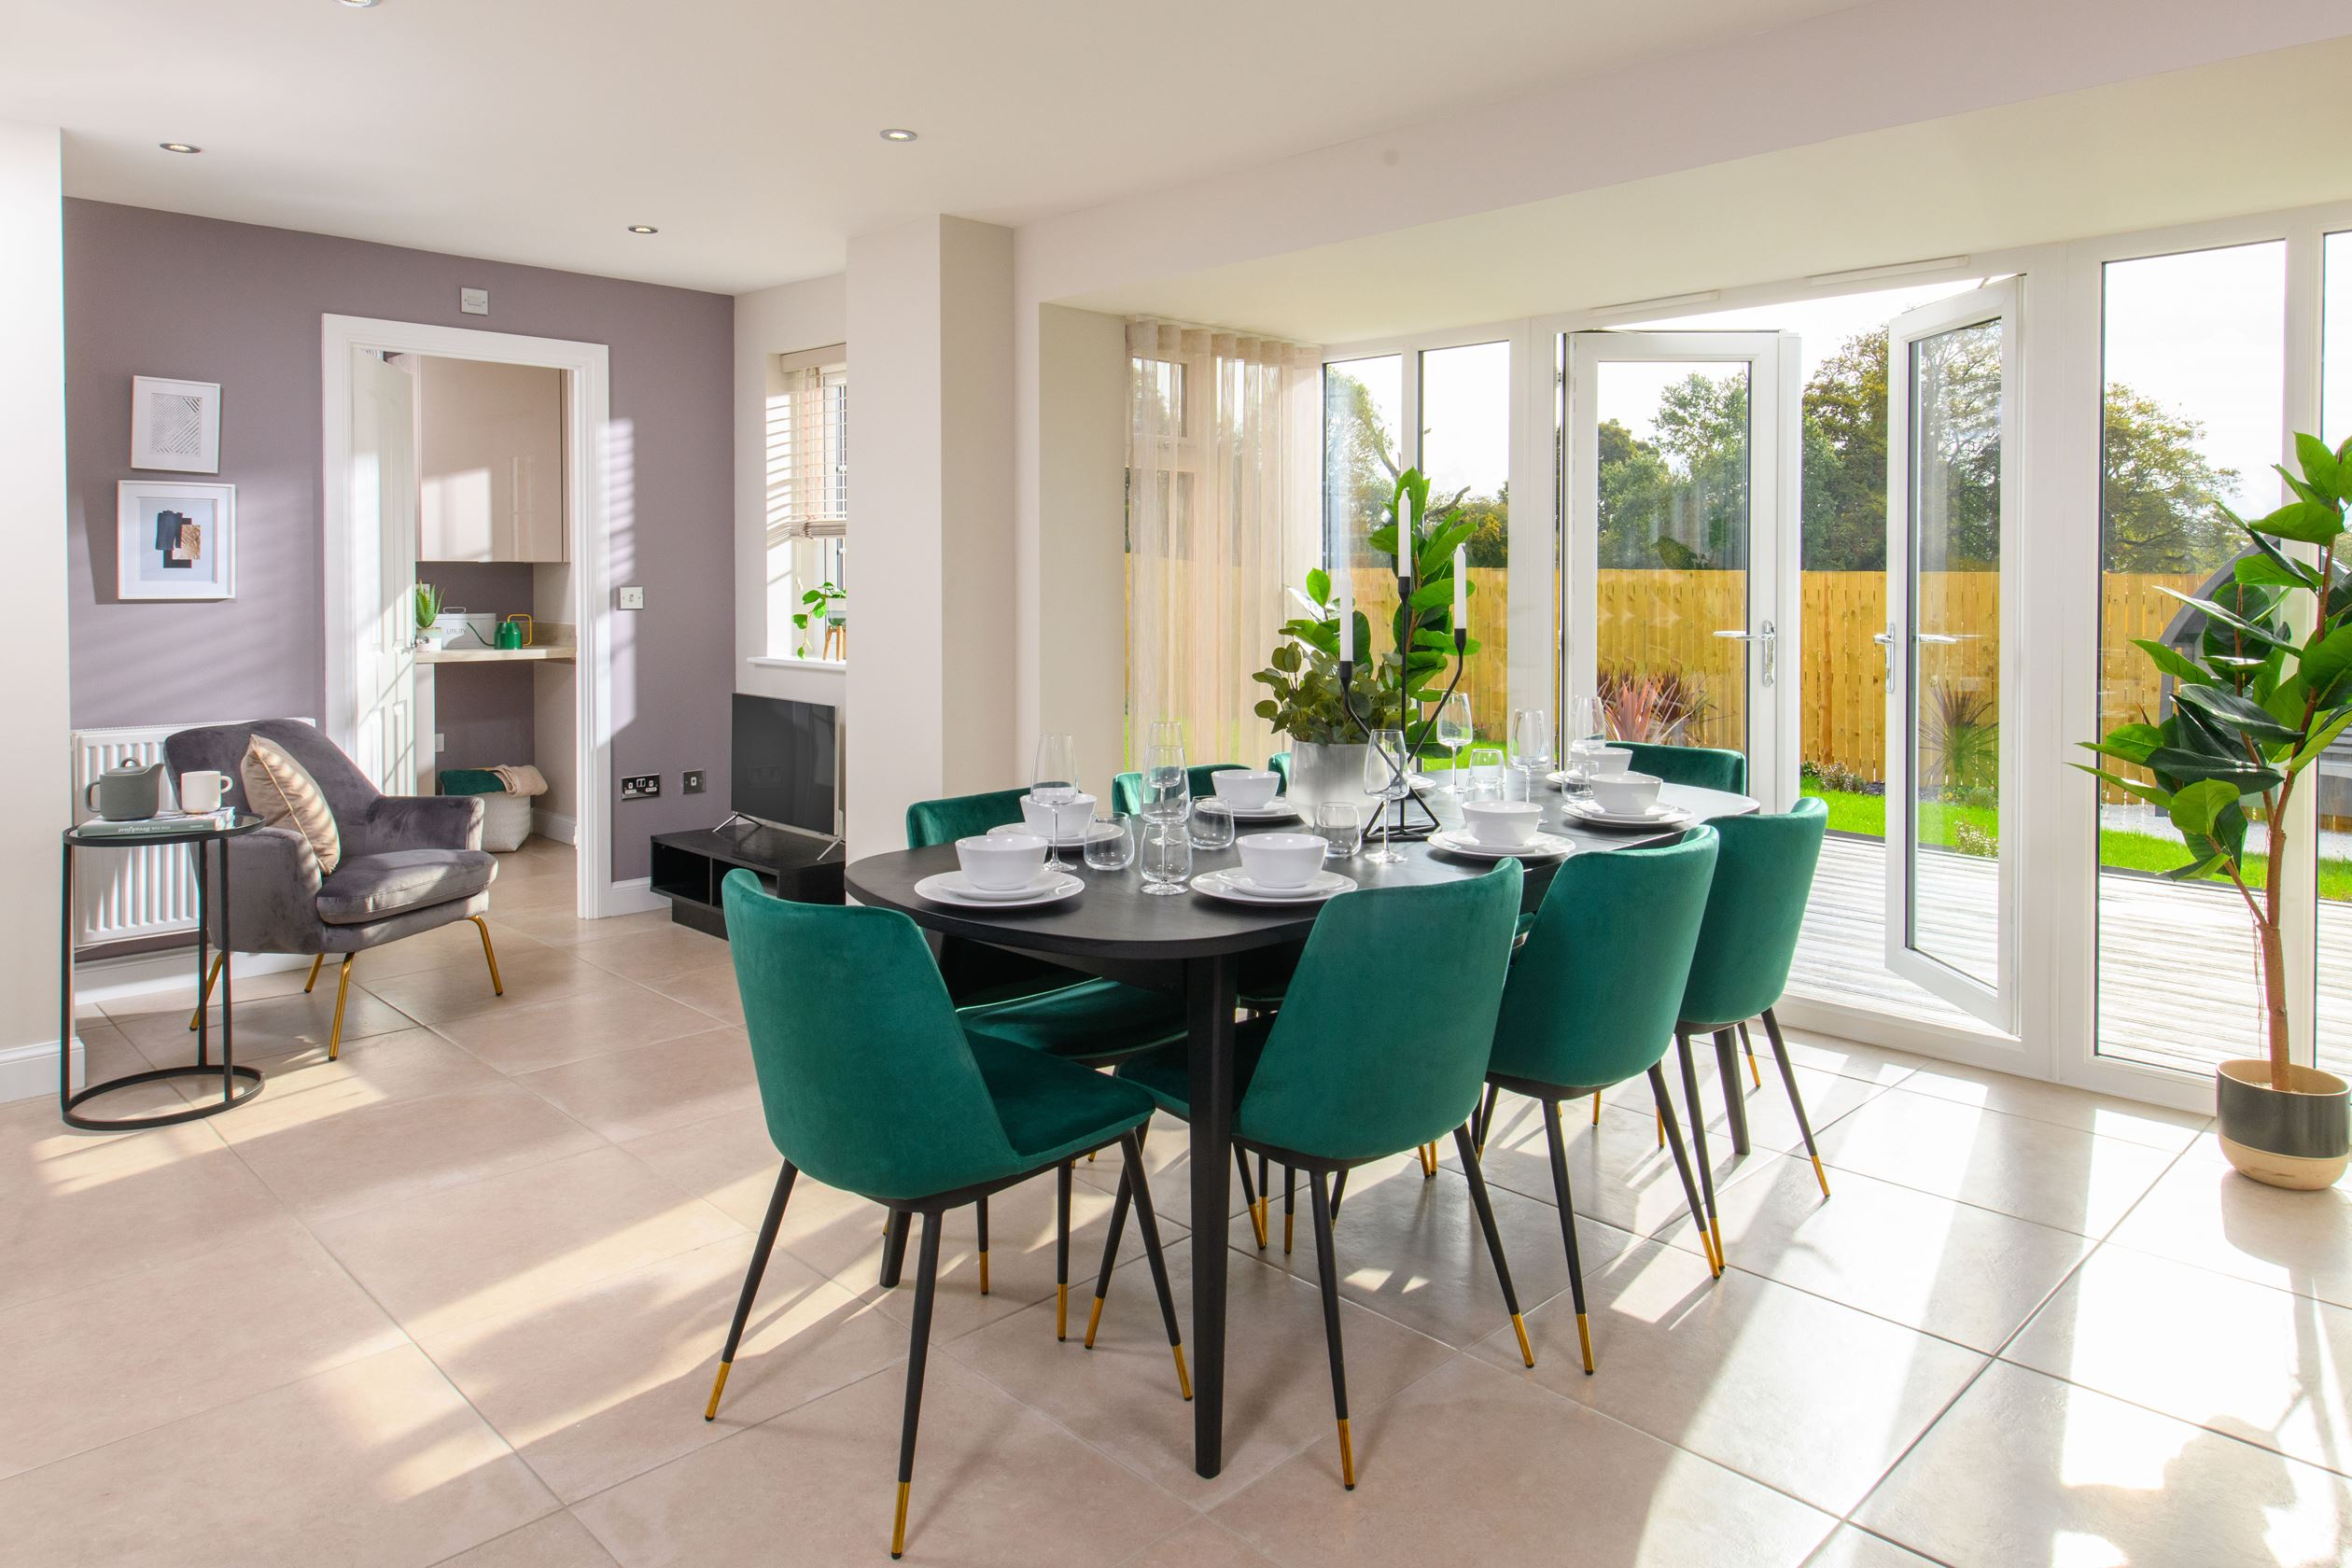 Kitchen diner in The Millford 4 bedroom Show Home